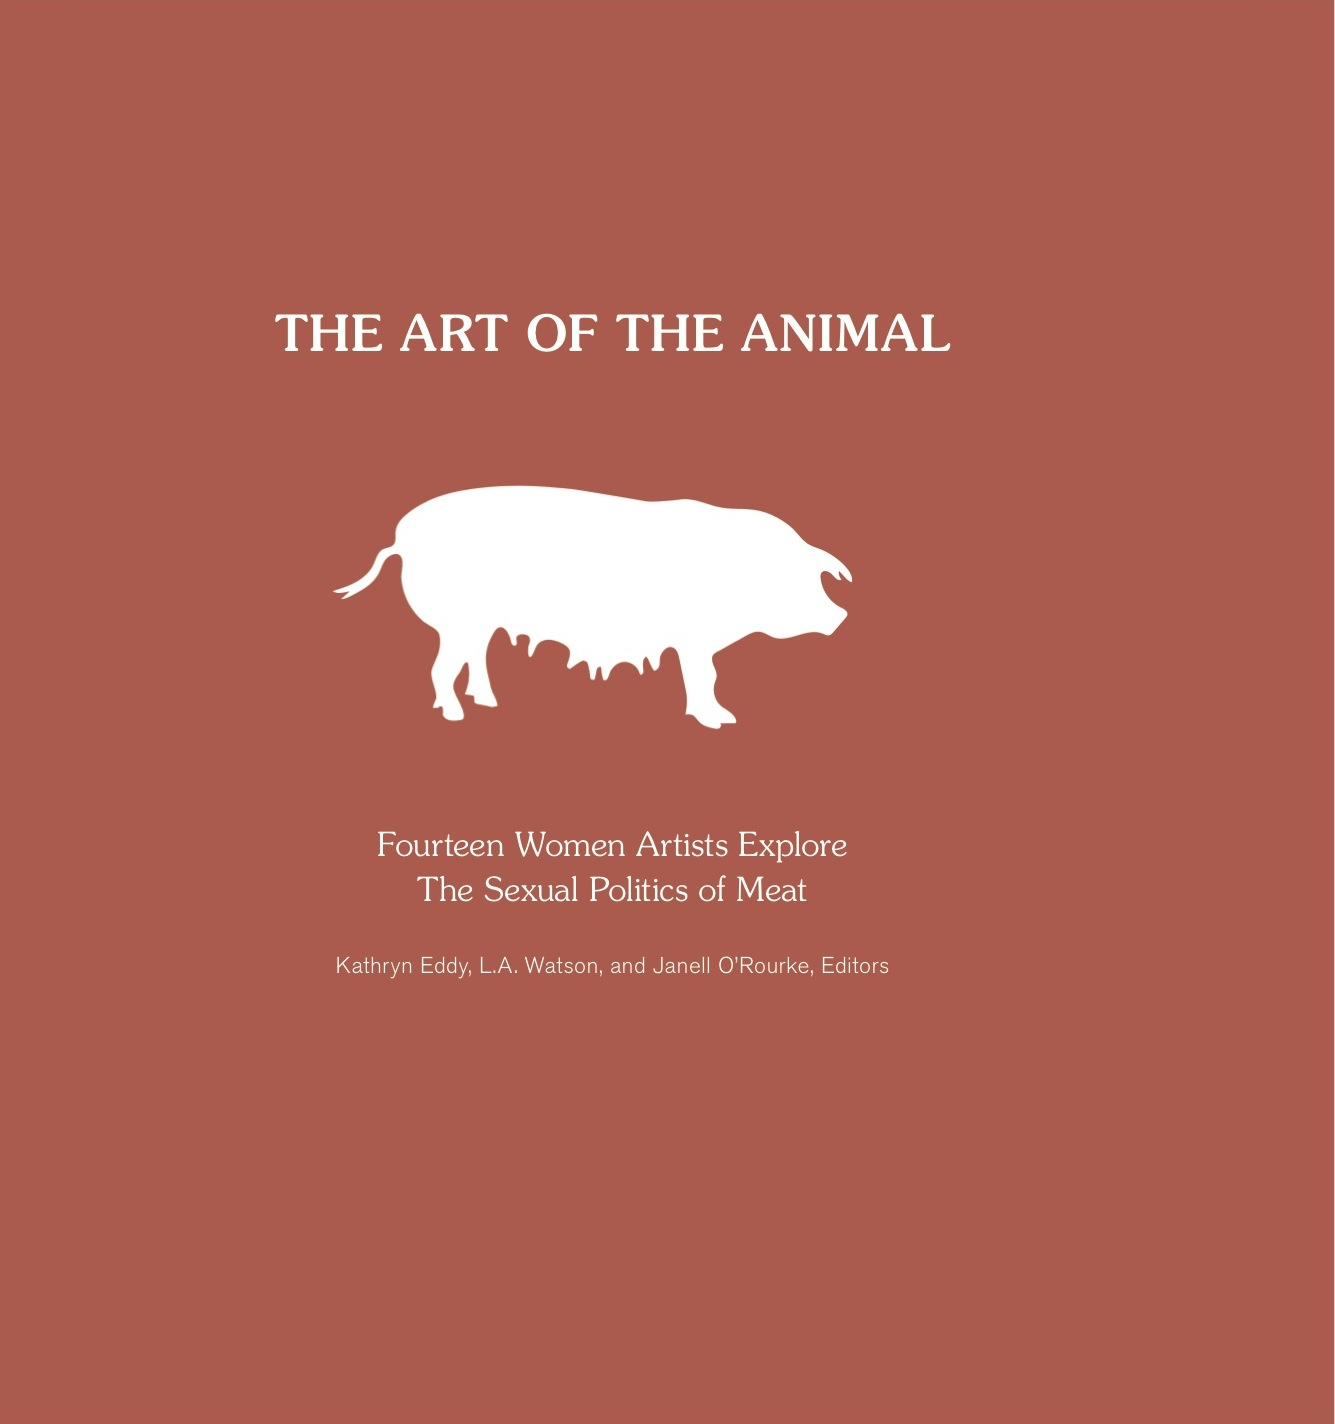 The Art of the Animal